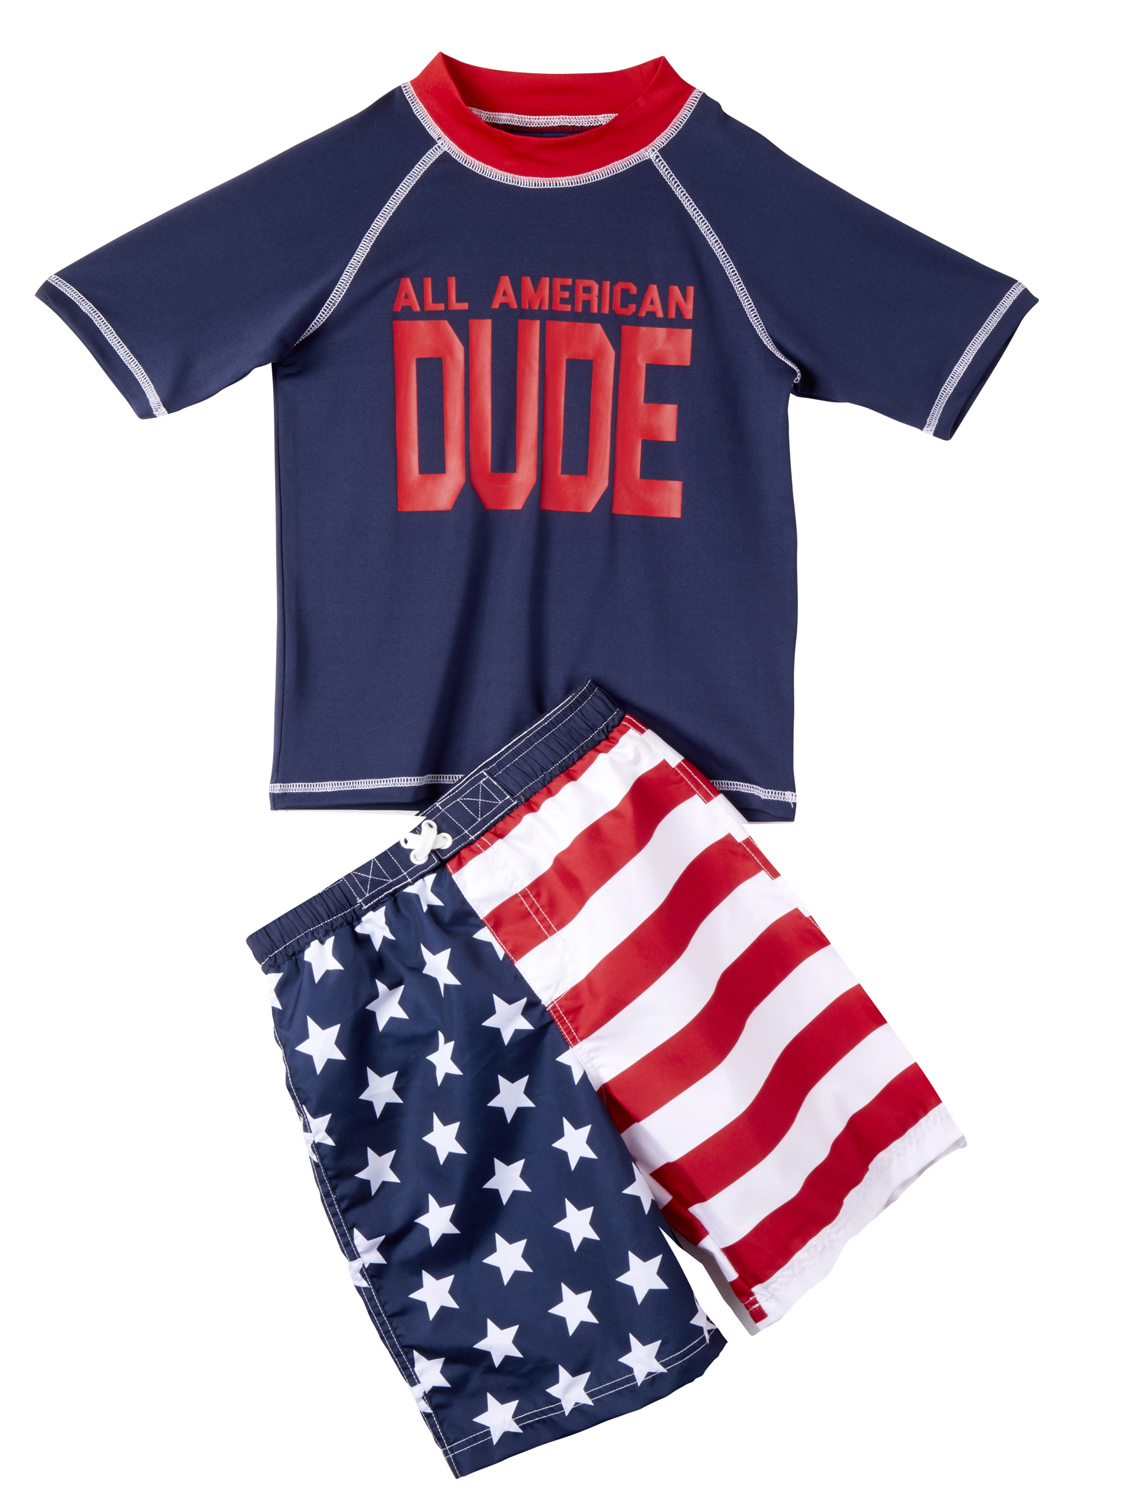 All American Swim Trunk and Rash Guard, 2-Piece Outfit Set (Little Boys)